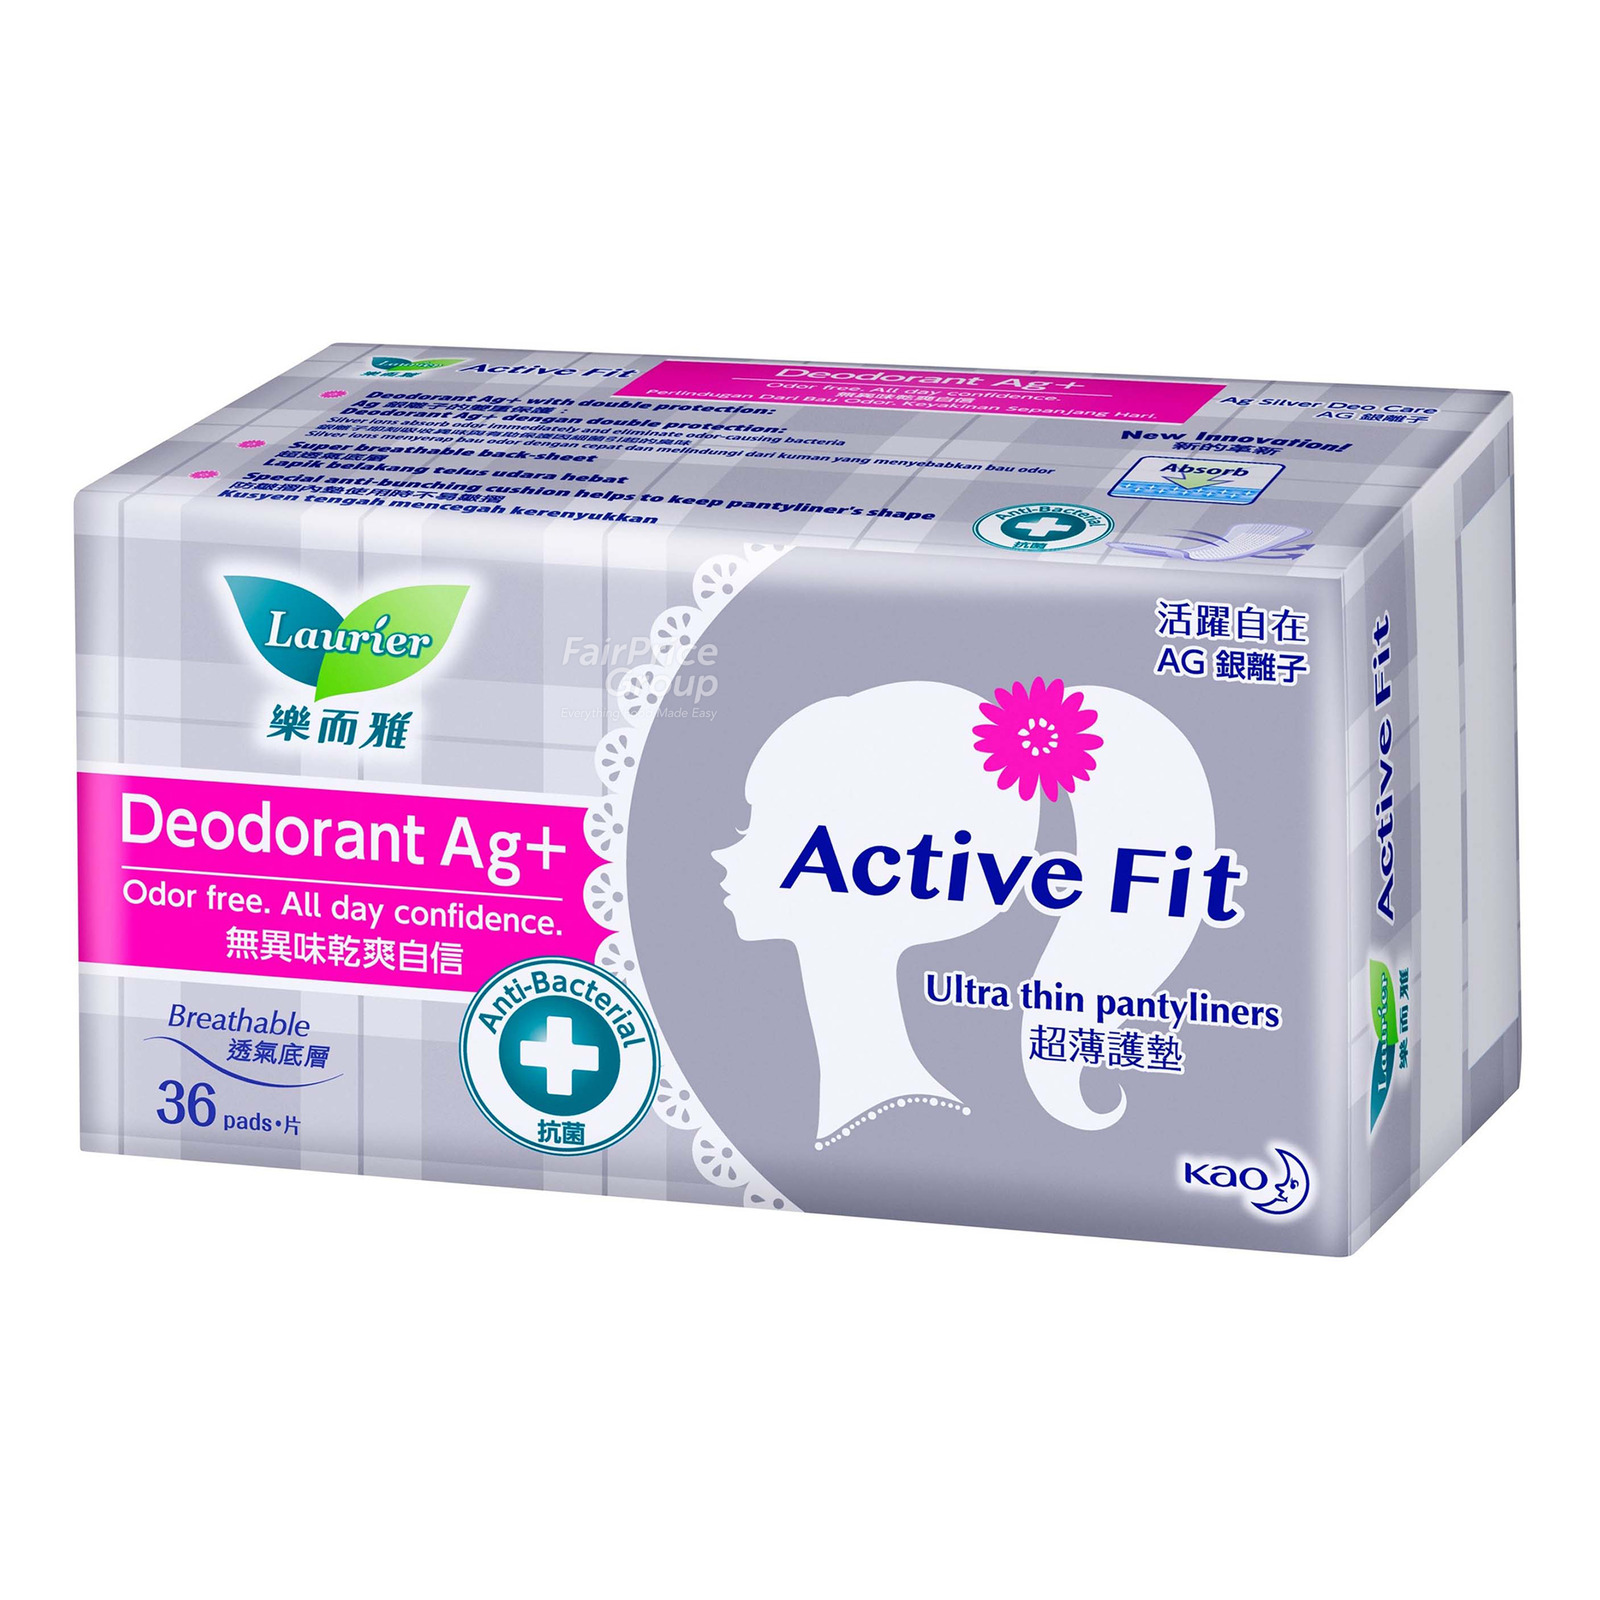 Laurier Active Fit Panty Liners - Deodorant AG+